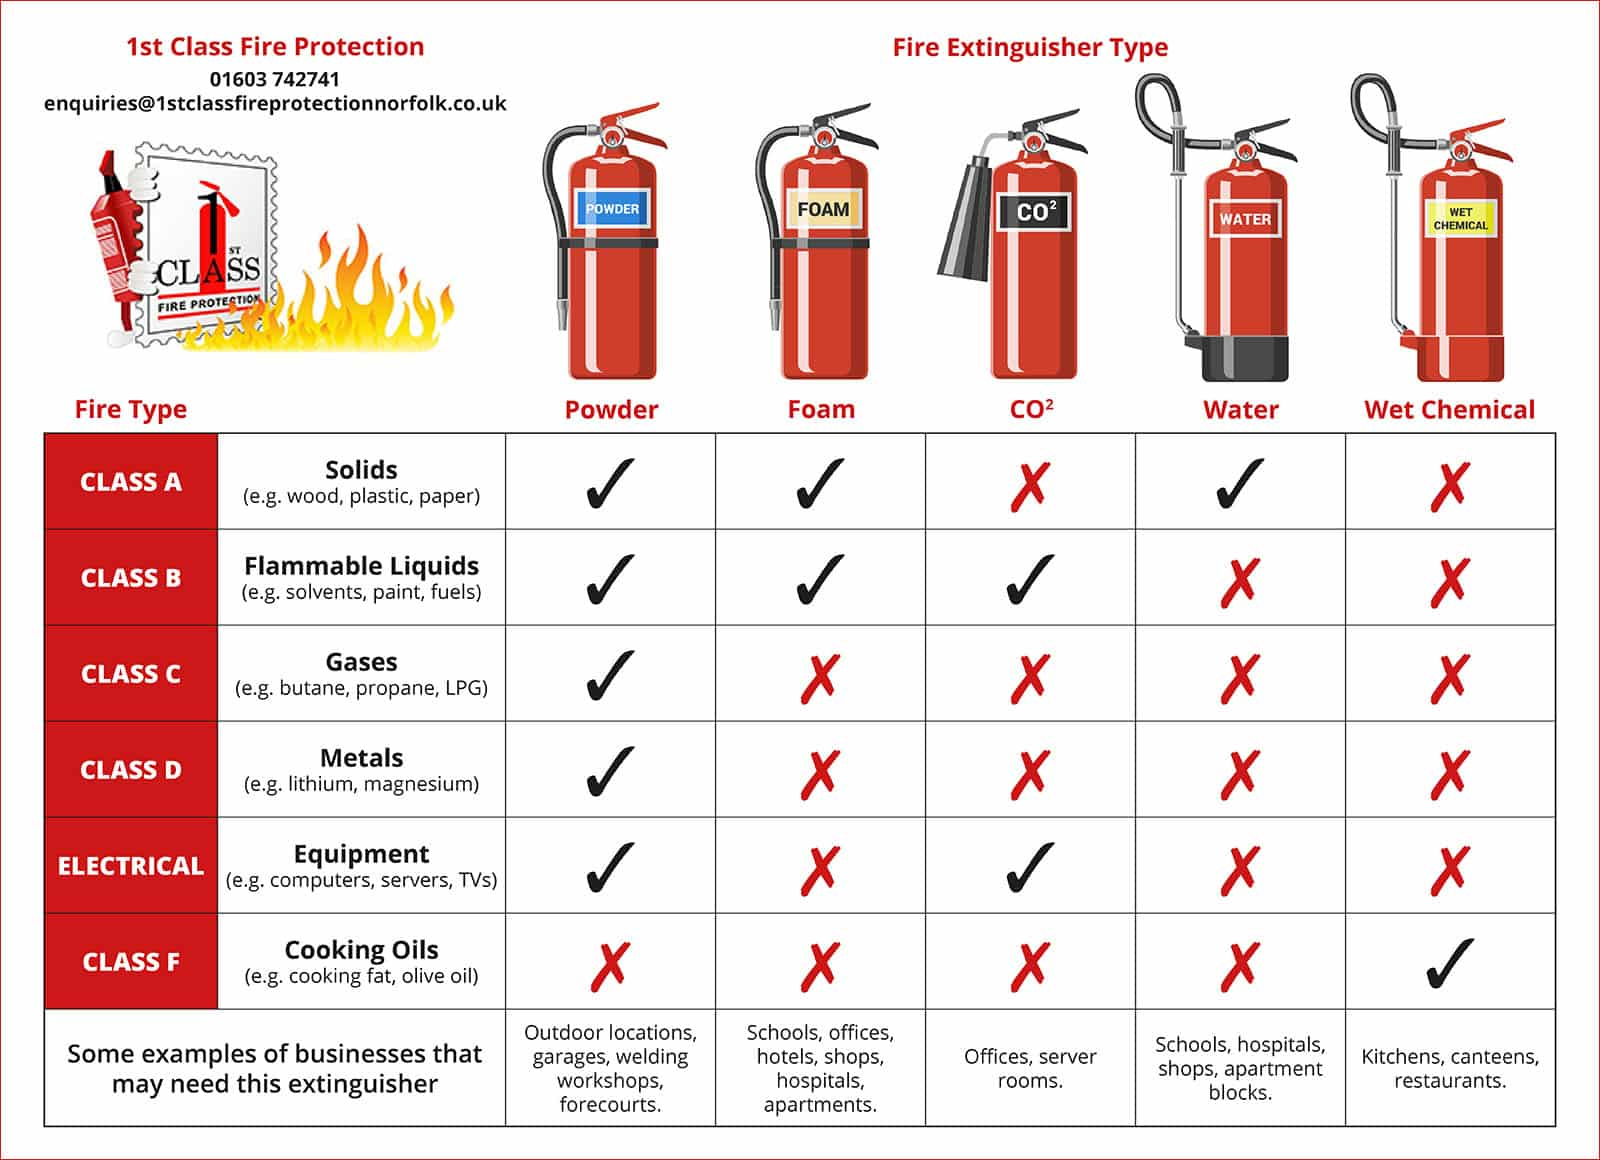 Classes of fire and fire extinguishers